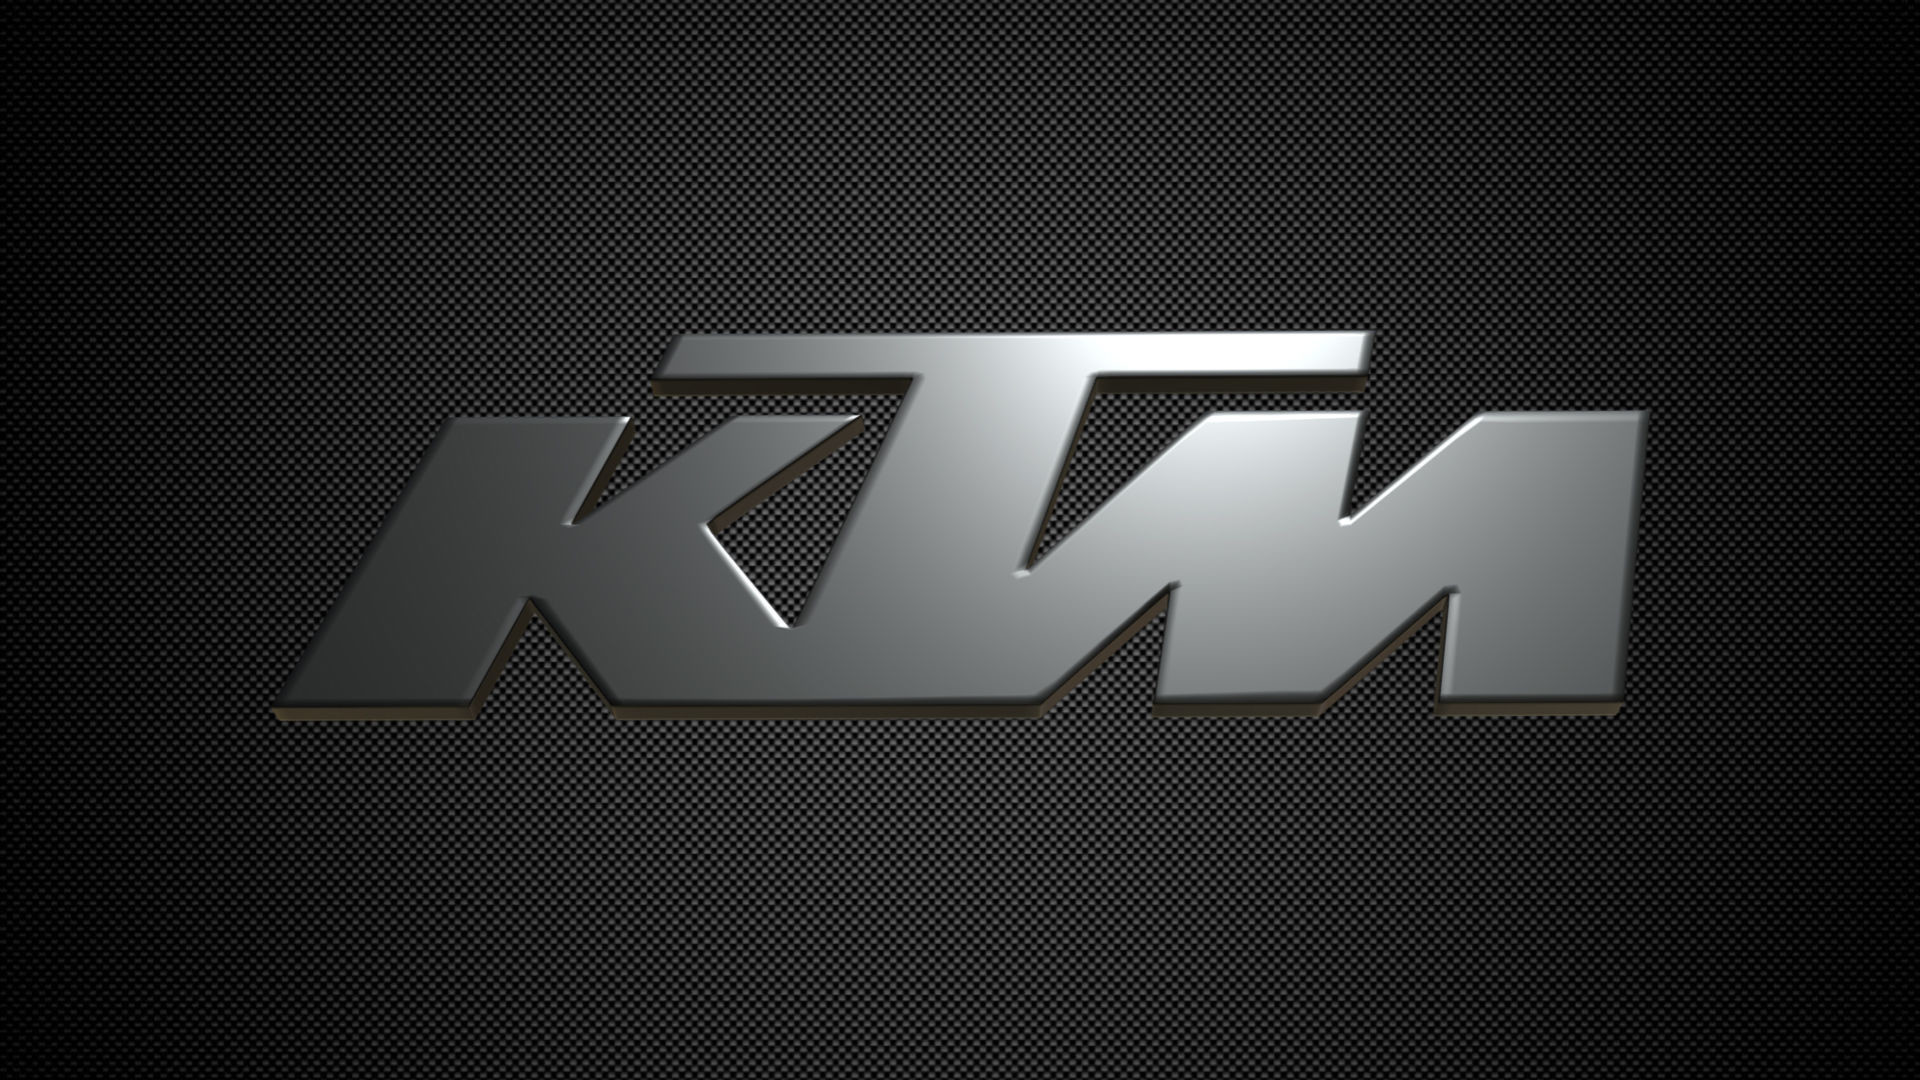 1920x1080 0 360x640 Ktm Wallpaper Iphone  Lates KTM Bikes HD Wallpapers  Pictures and Images Download